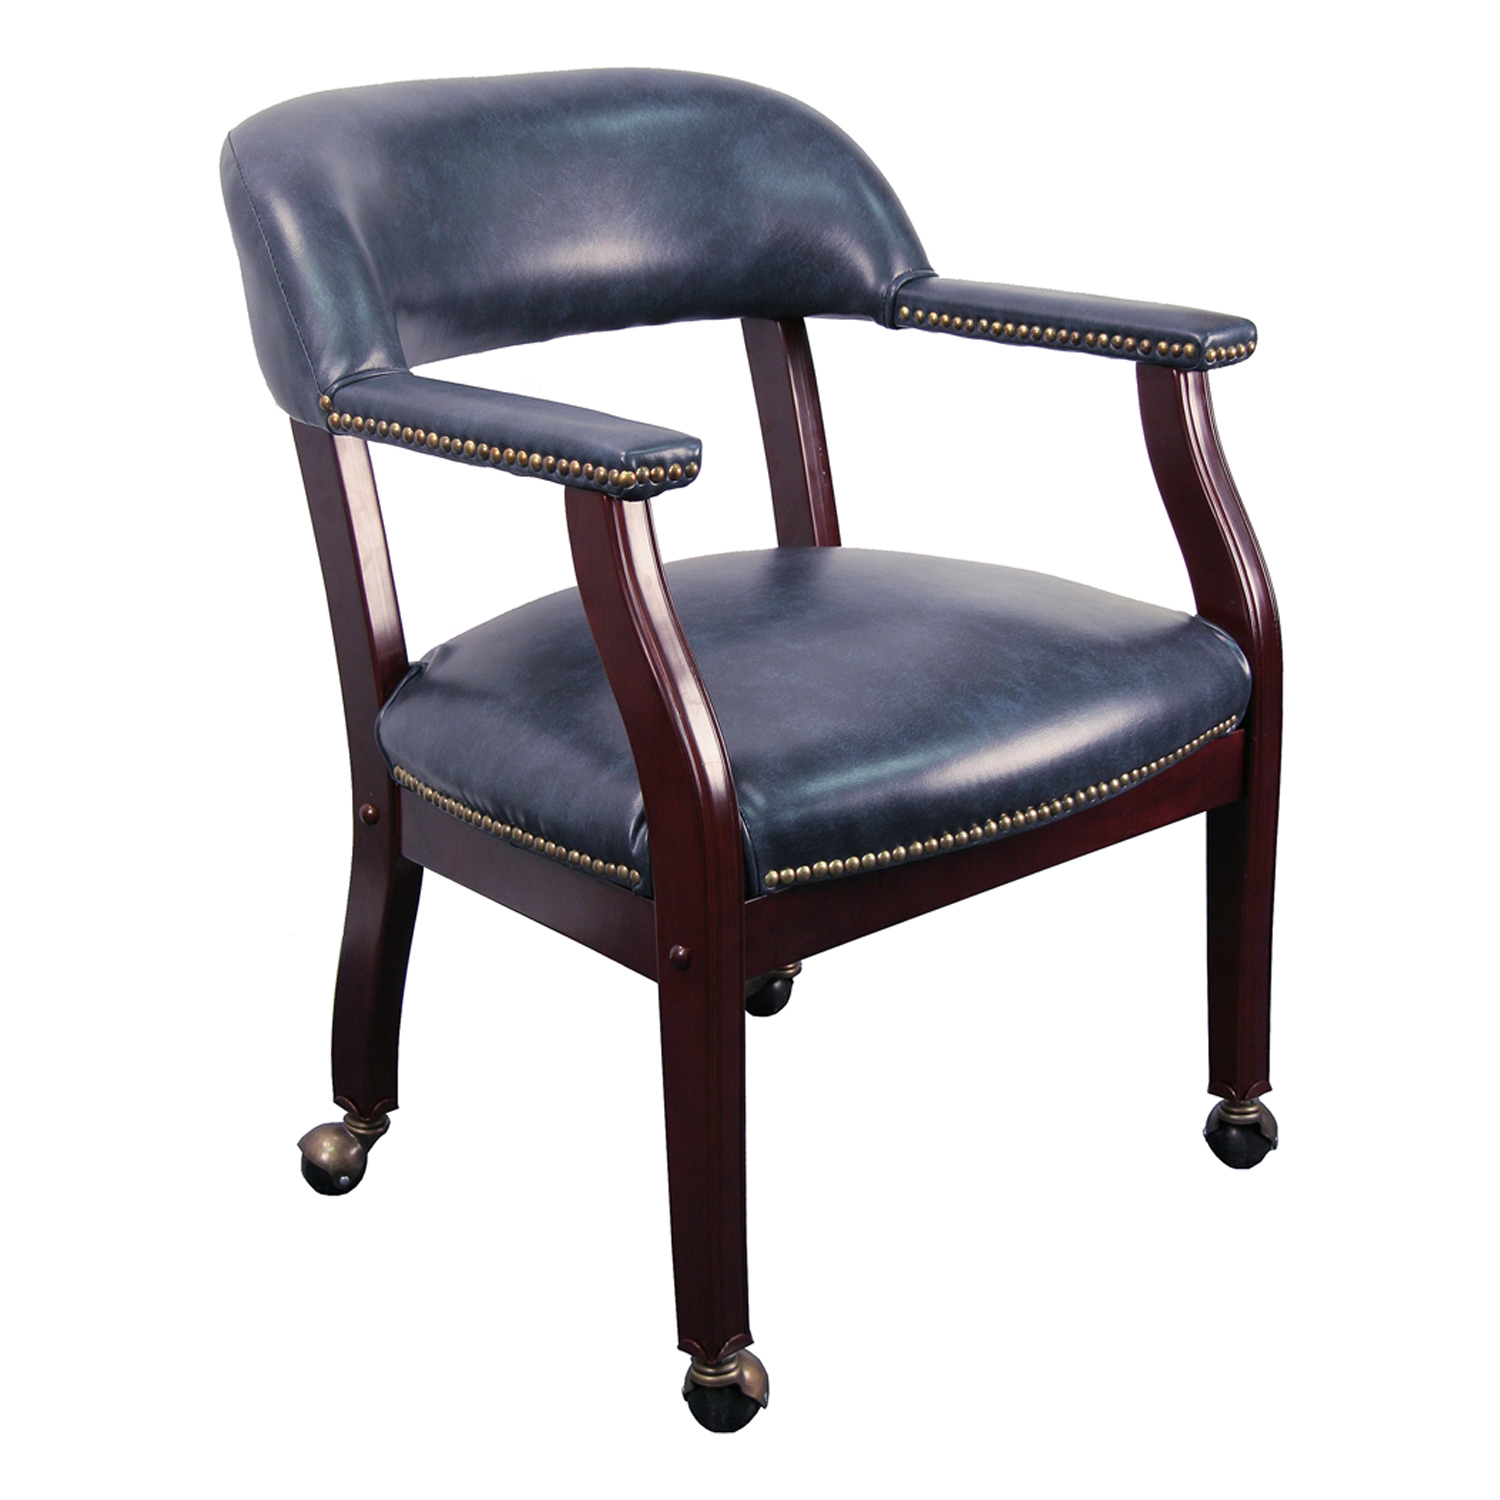 Chair Casters Conference Room Chairs B Z100 Navy Gg Navy Blue Vinyl